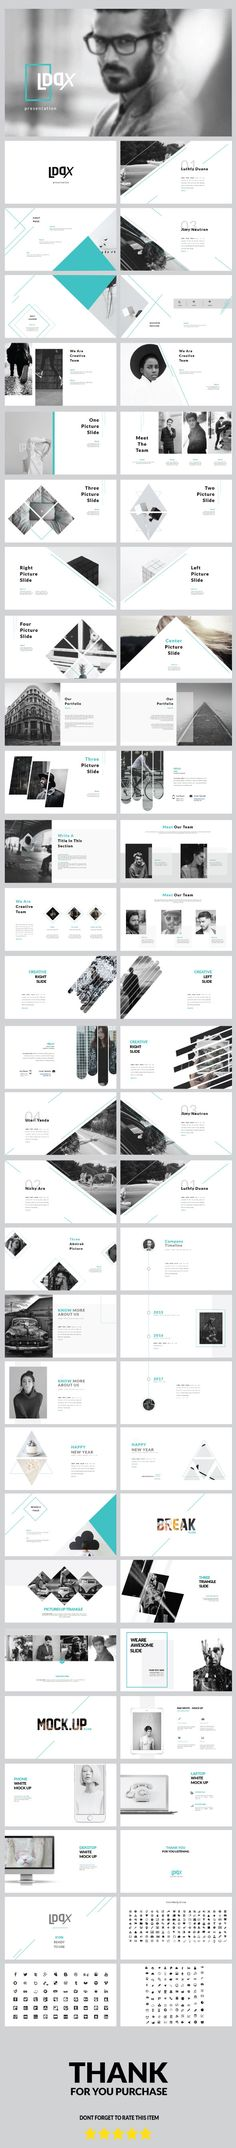 Lddx - Multipurpose Powerpoint Template